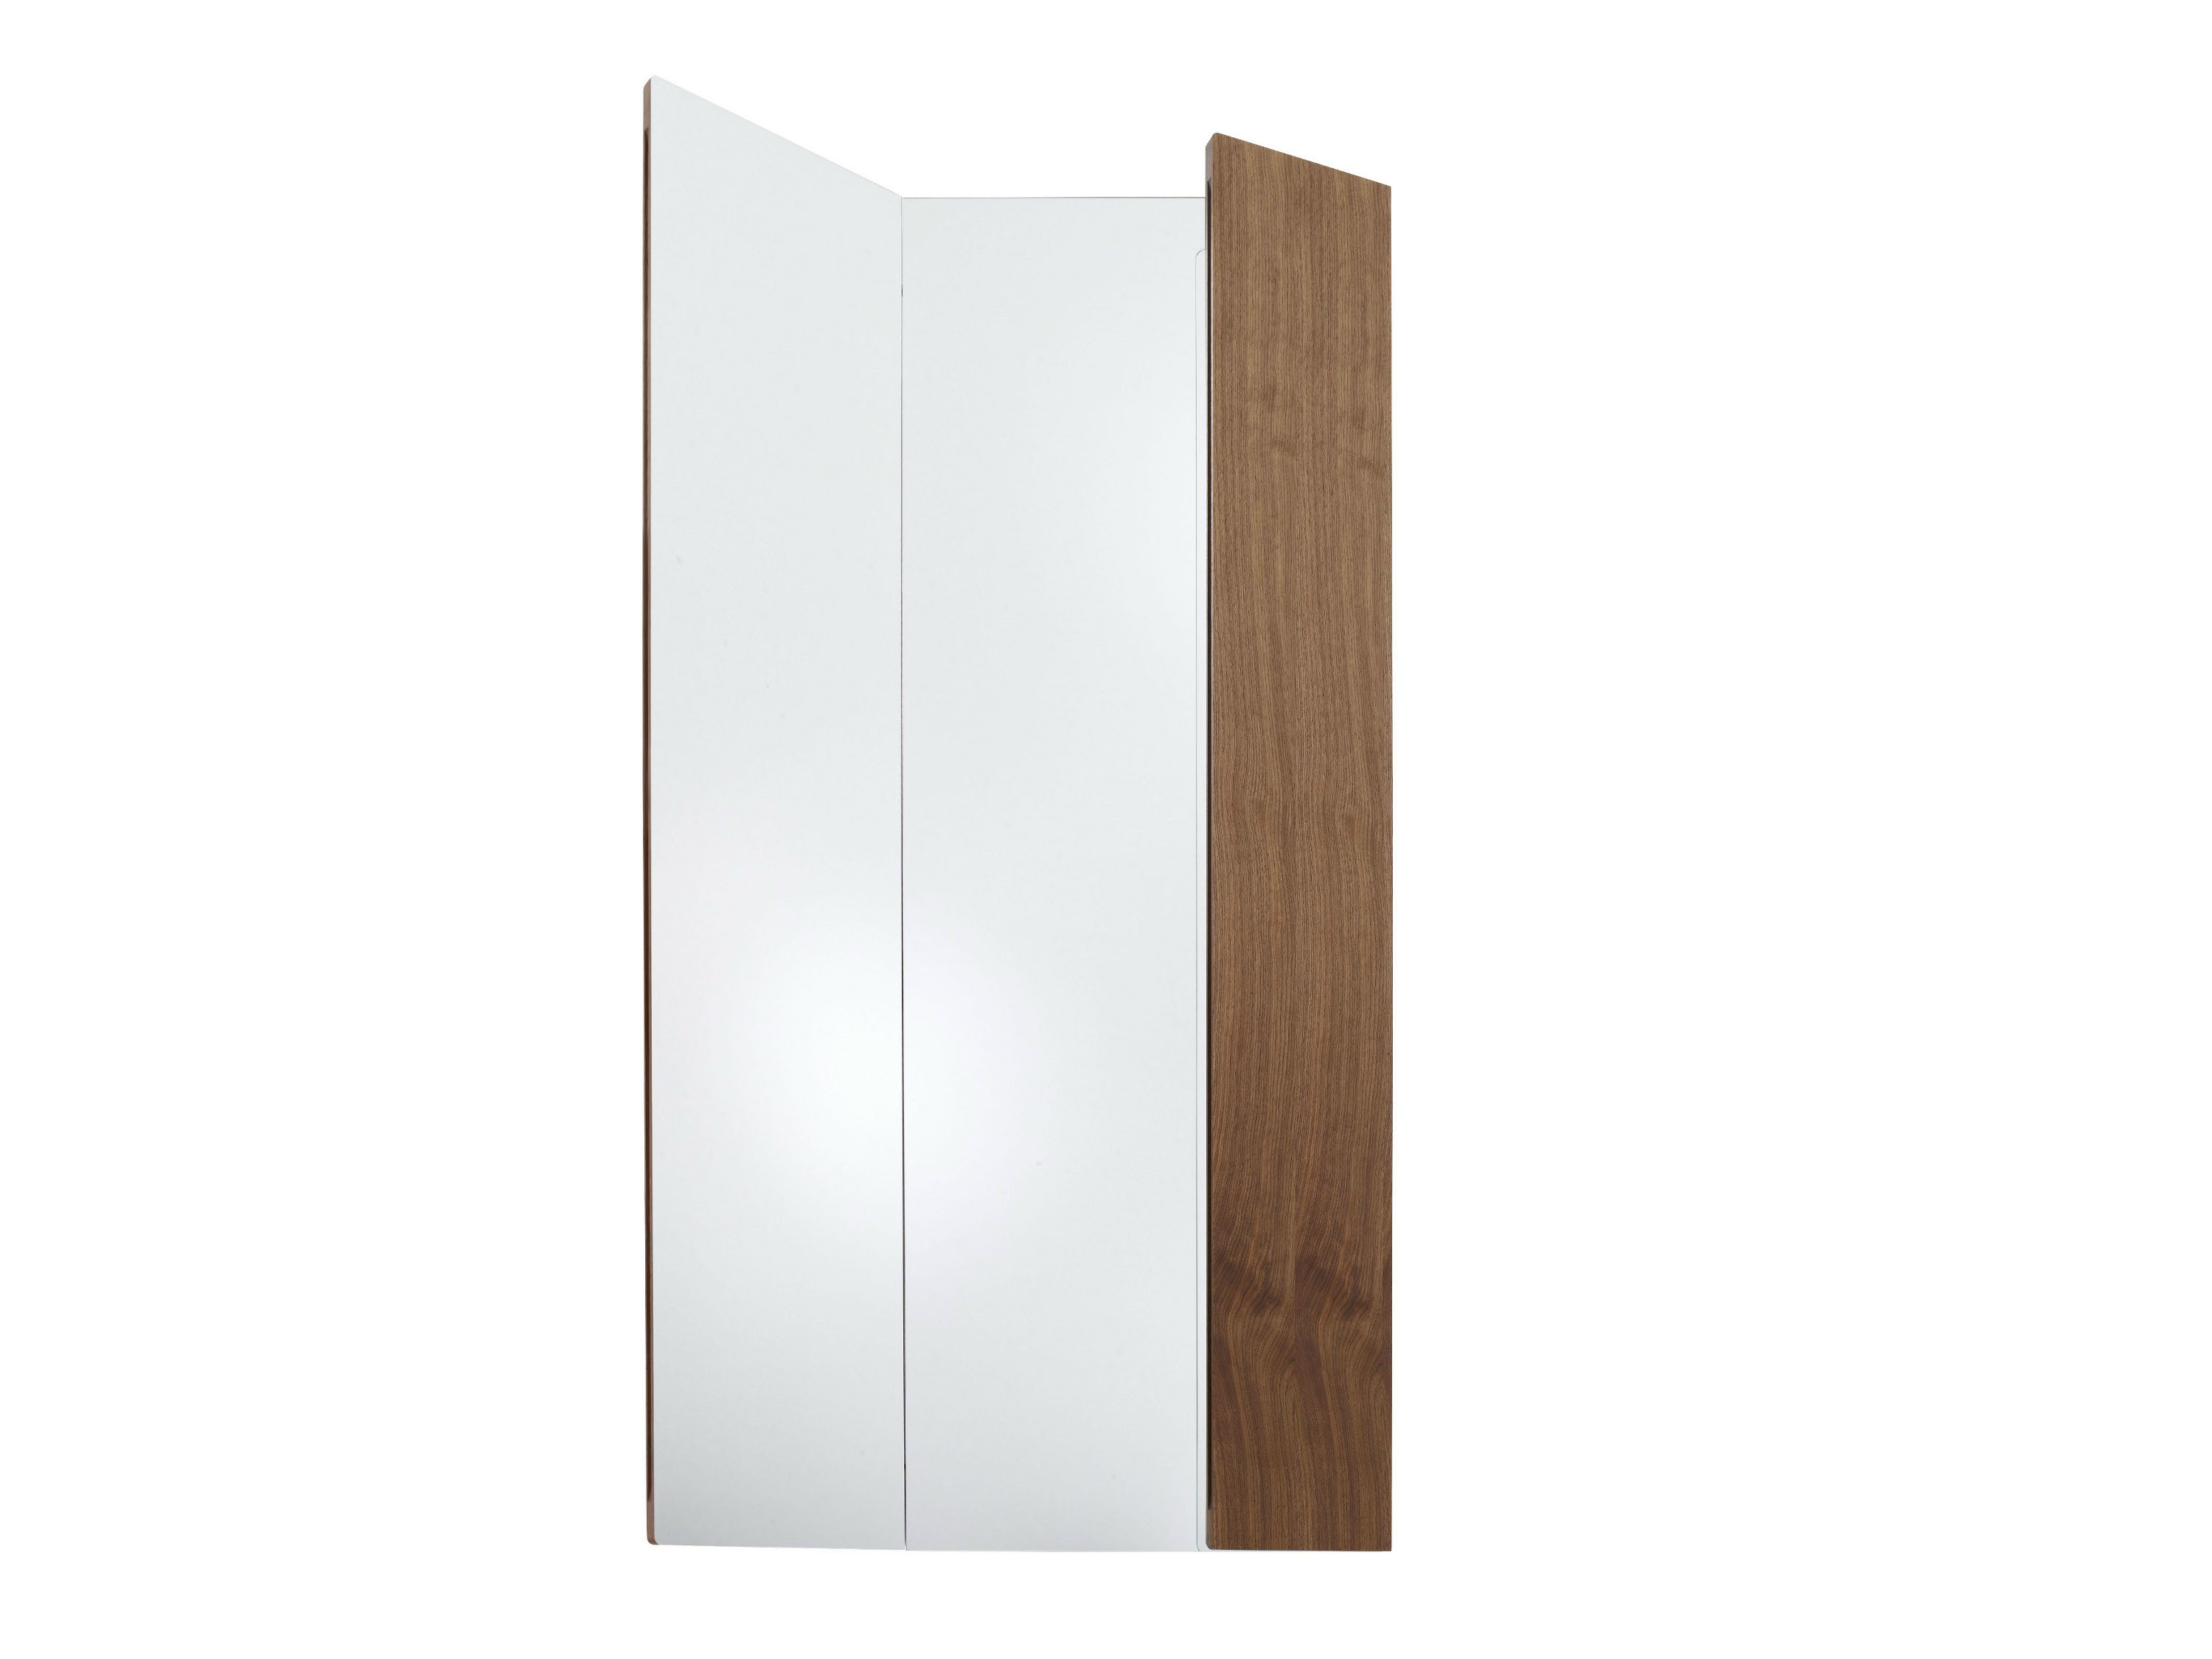 Miroir rectangulaire mural adonis by roset italia design for Miroir mural